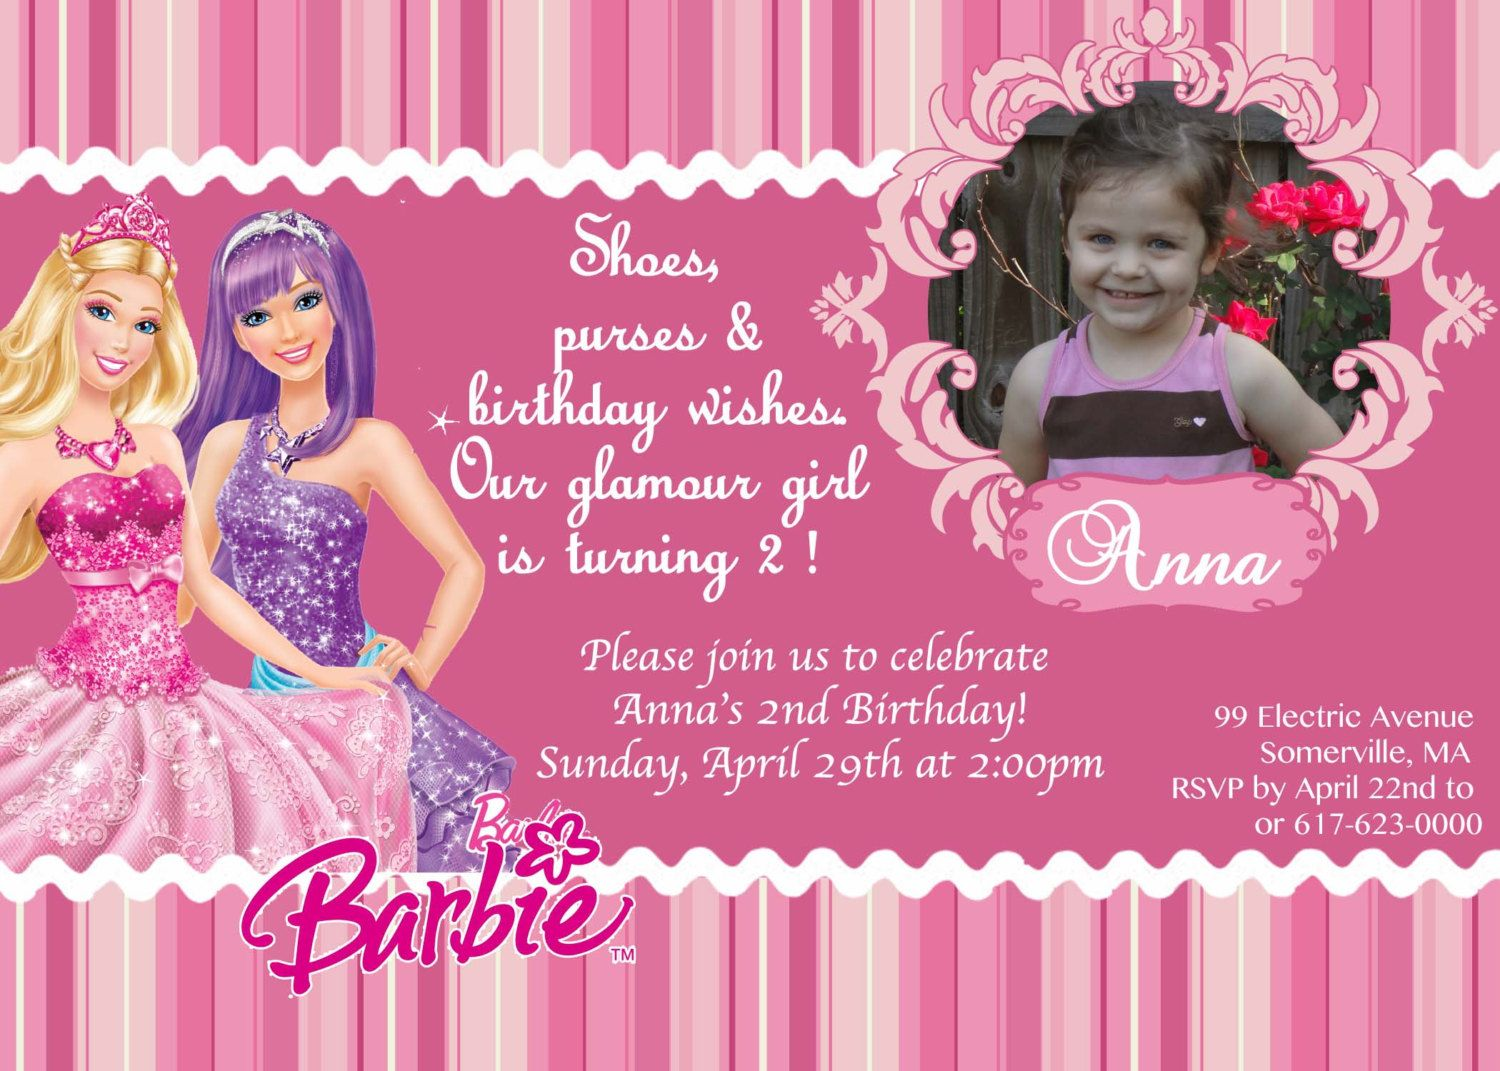 CUSTOM PHOTO Invitations Princess Pop Star Barbie Birthday ...